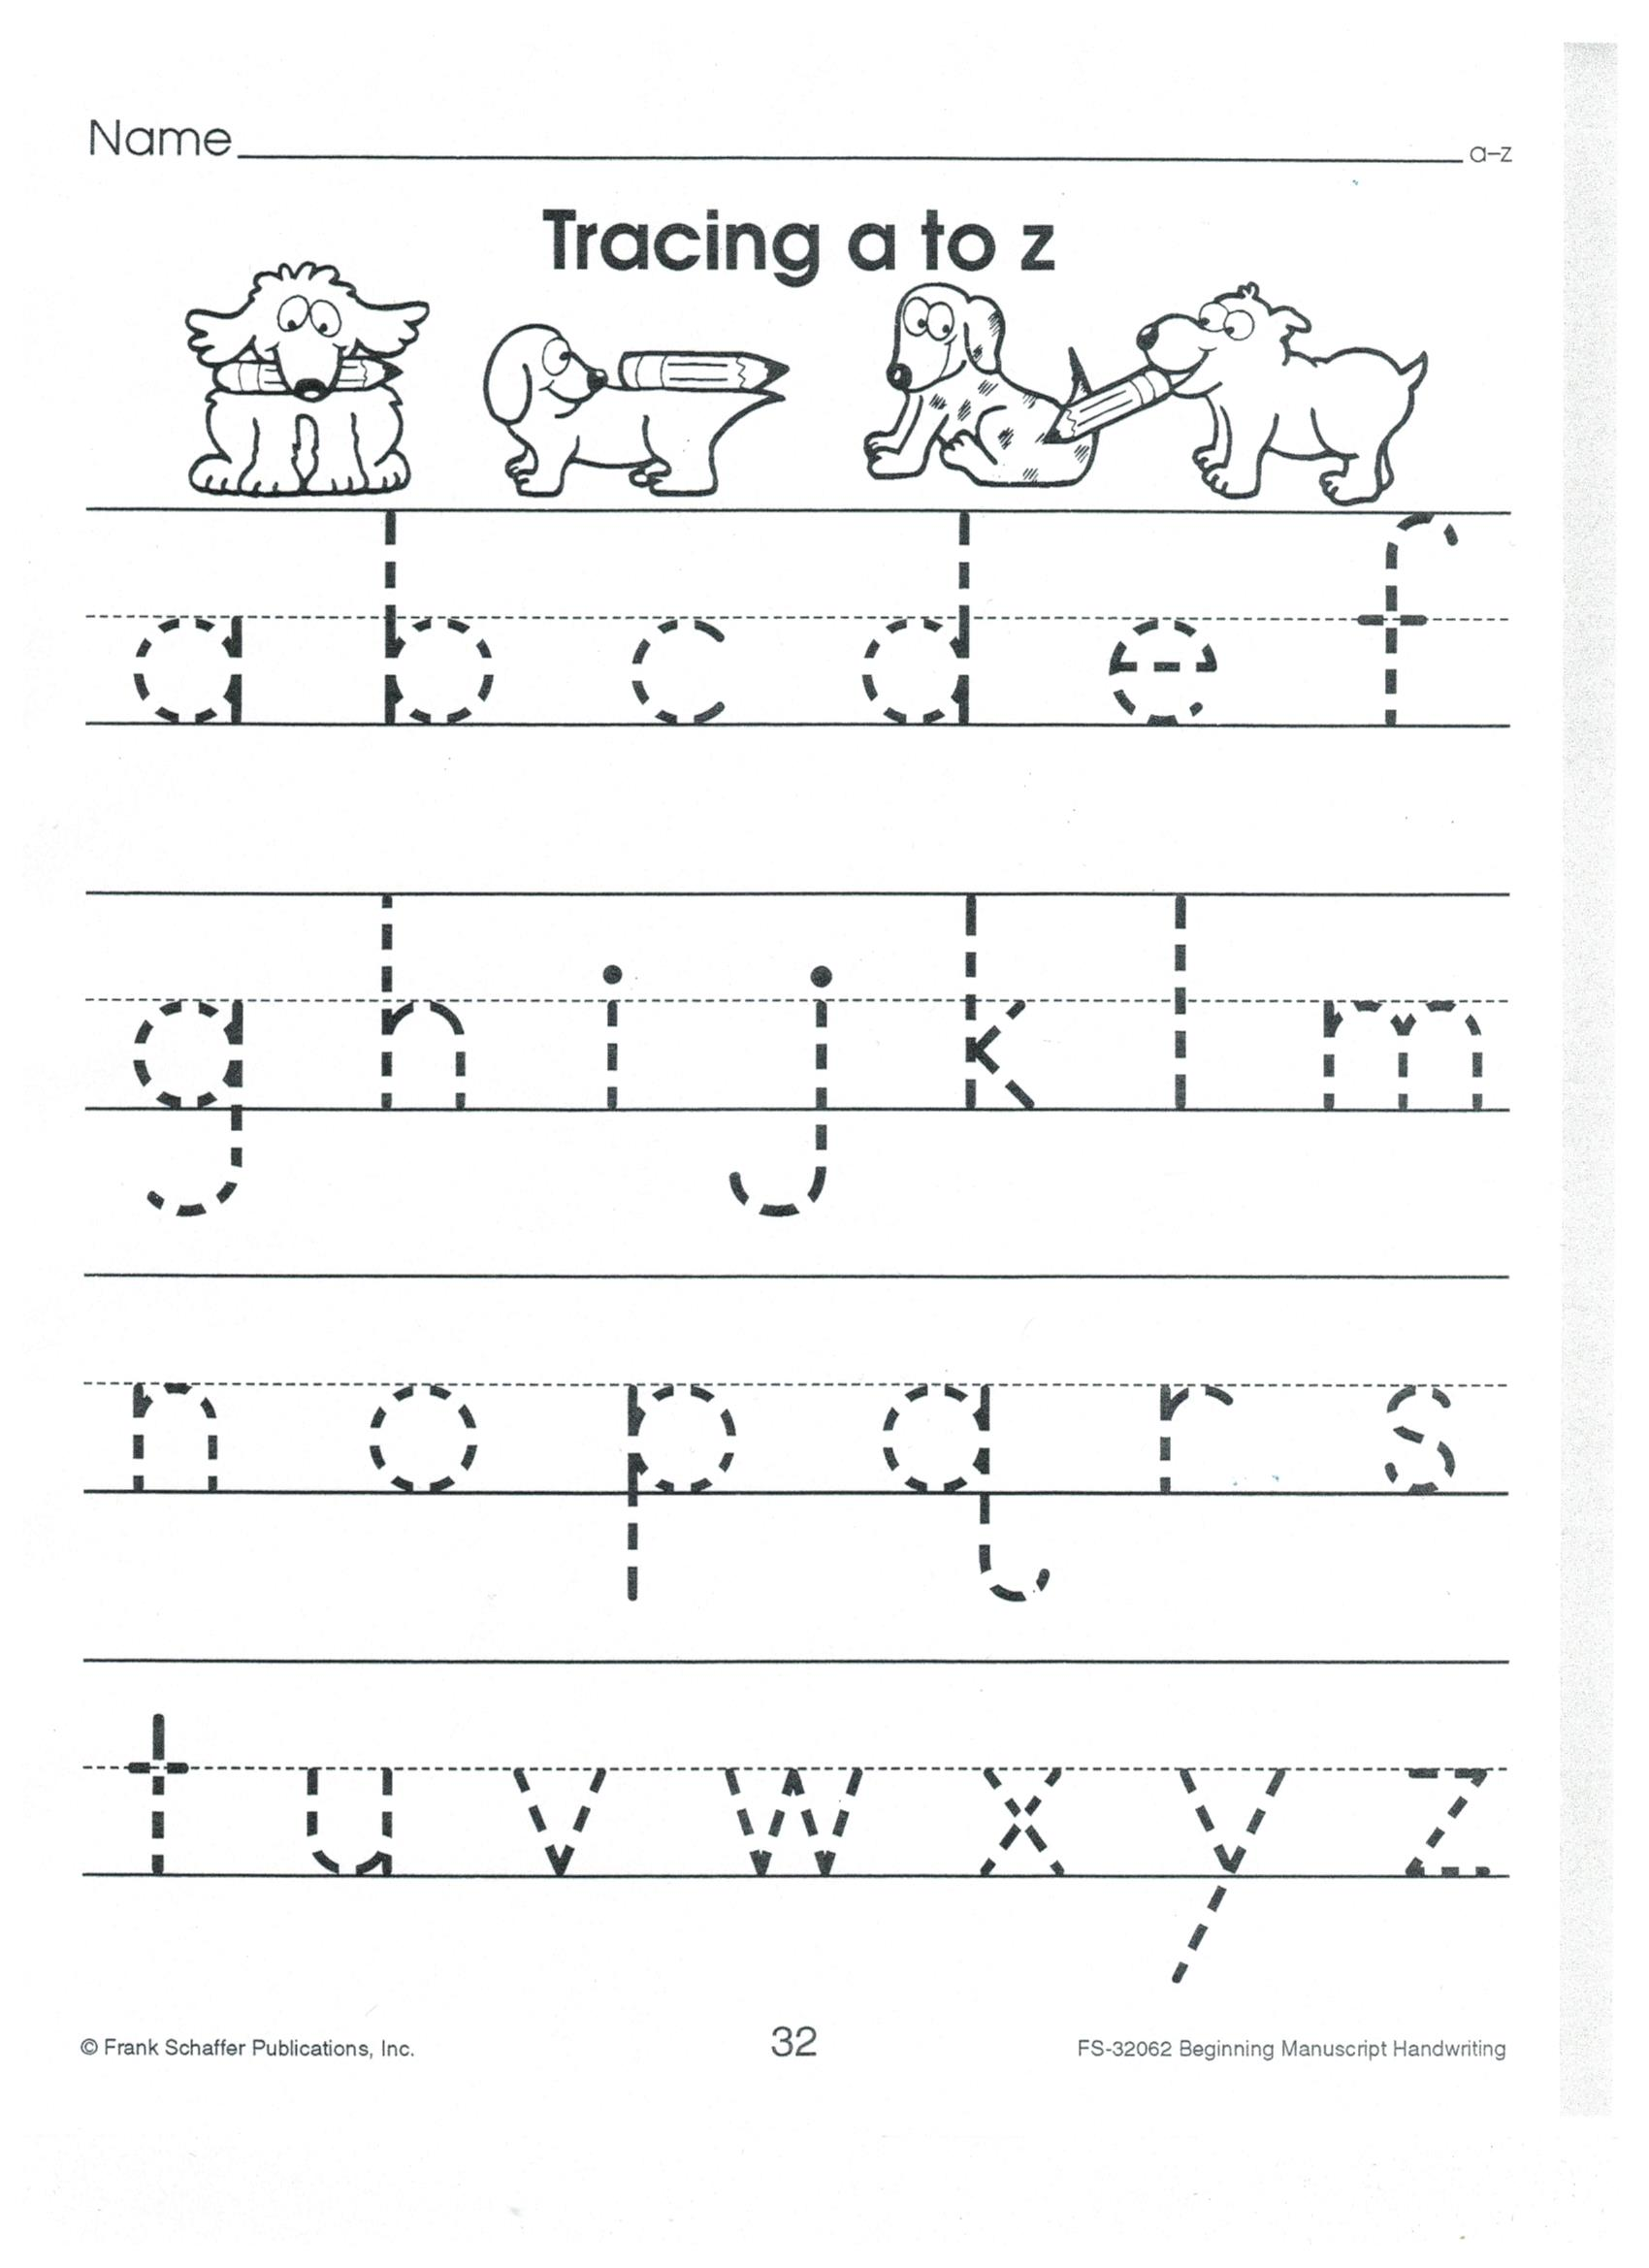 English Print Abc A To Z Lower Case 001